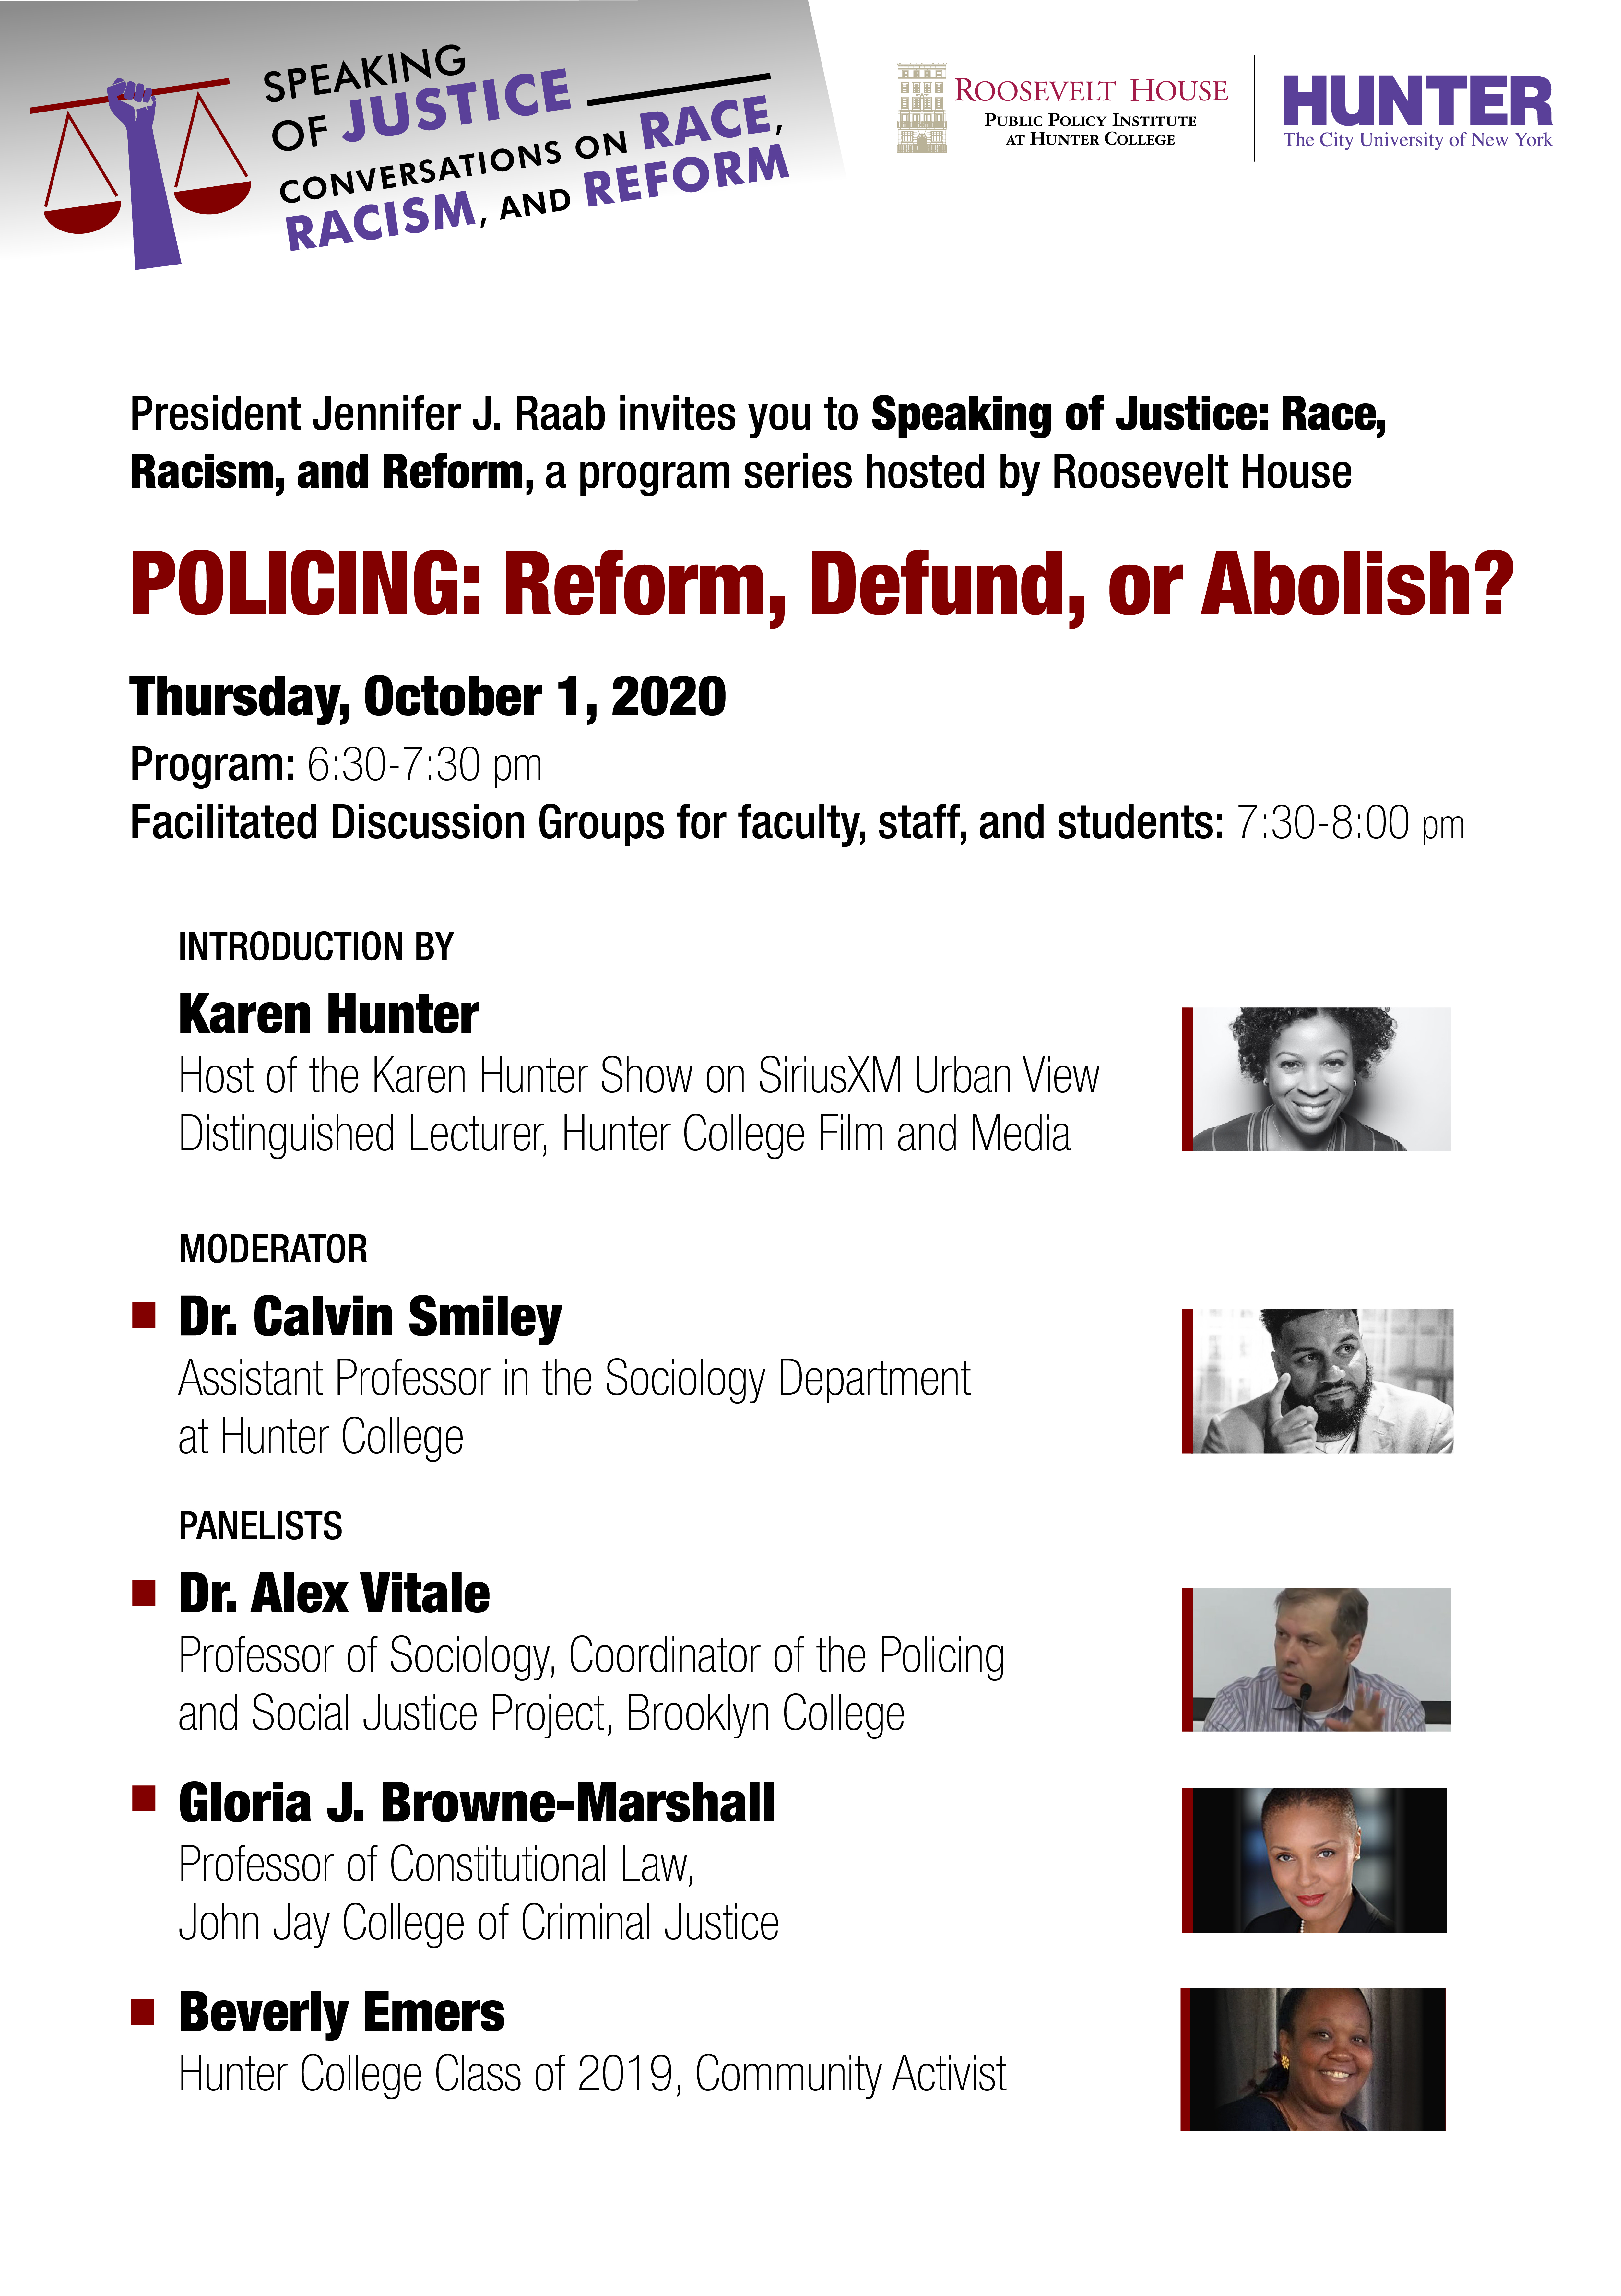 speaking of justice policing reform defund or abolish 10 01 20 hunter college